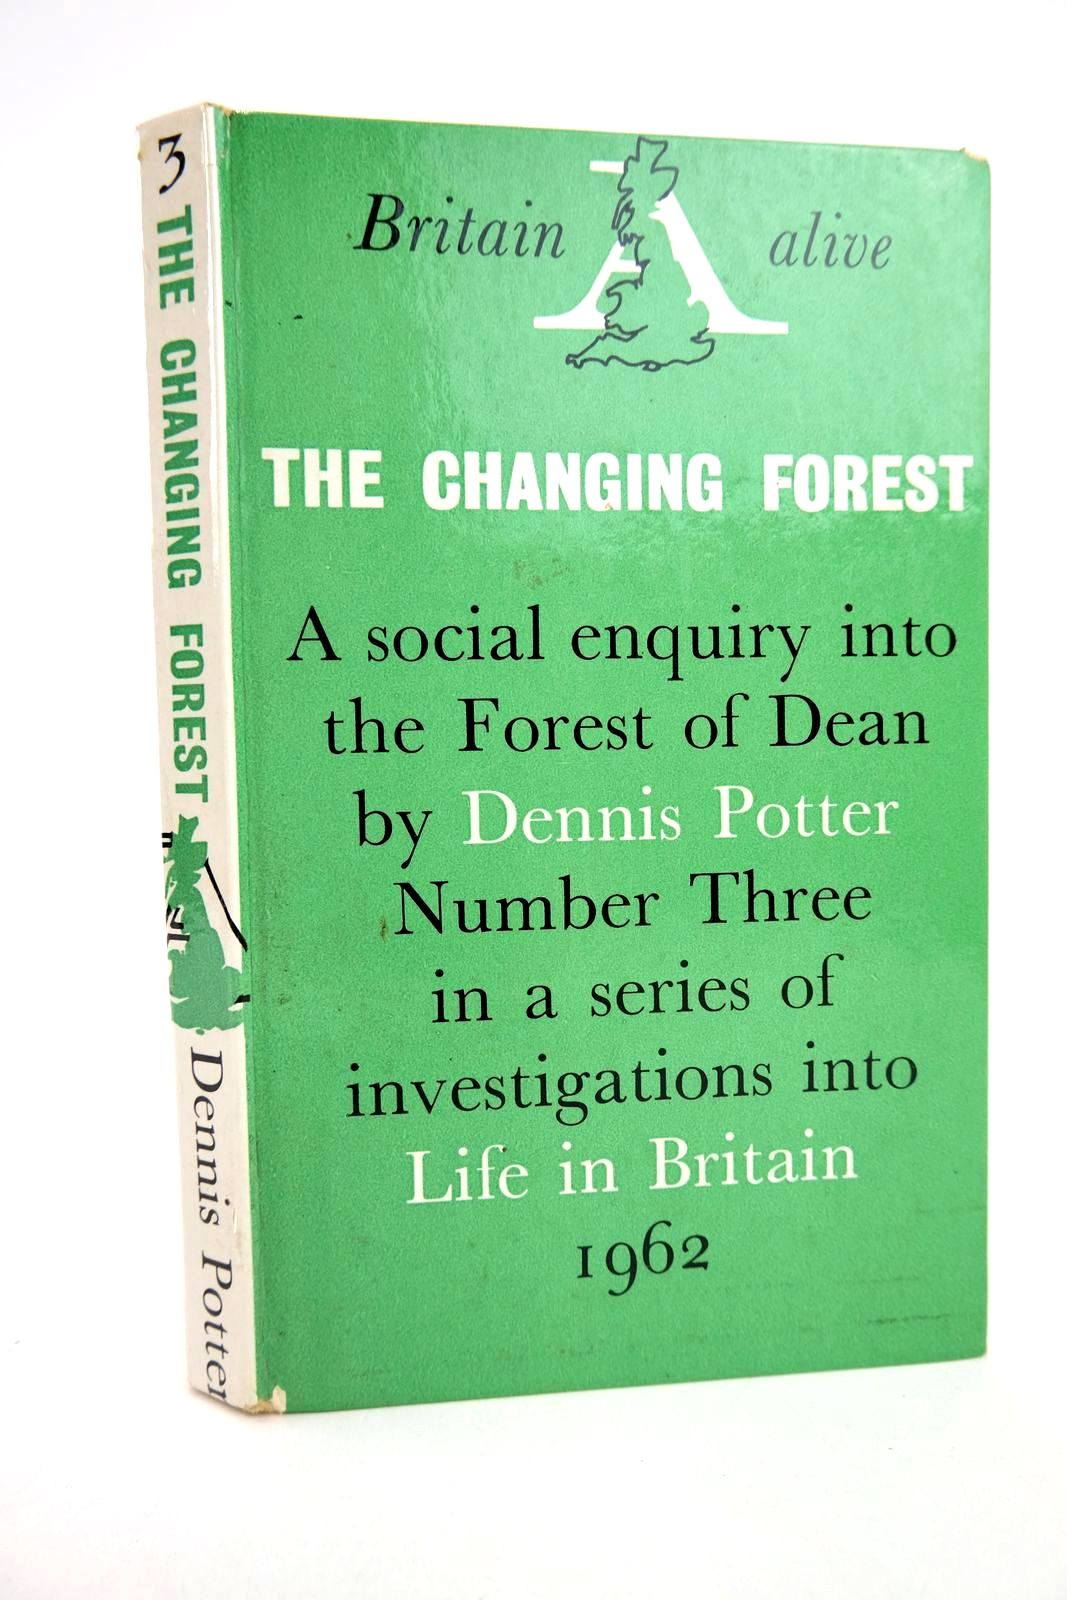 Photo of THE CHANGING FOREST: LIFE IN THE FOREST OF DEAN TODAY written by Potter, Dennis published by Secker & Warburg (STOCK CODE: 1318779)  for sale by Stella & Rose's Books